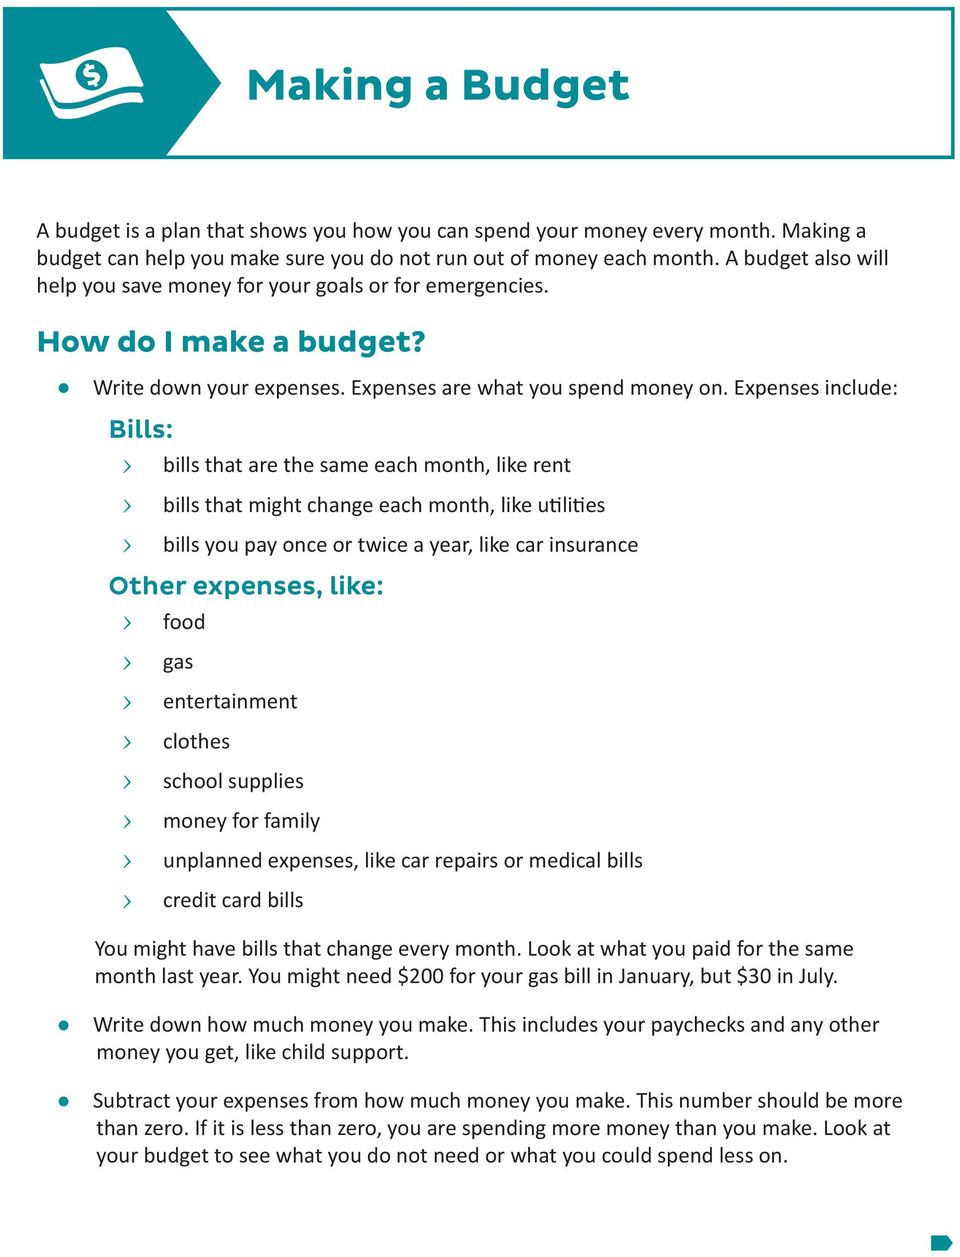 Expenses include: Bills: > > bills that are the same each month, like rent > > bills that might change each month, like utilities > > bills you pay once or twice a year, like car insurance Other